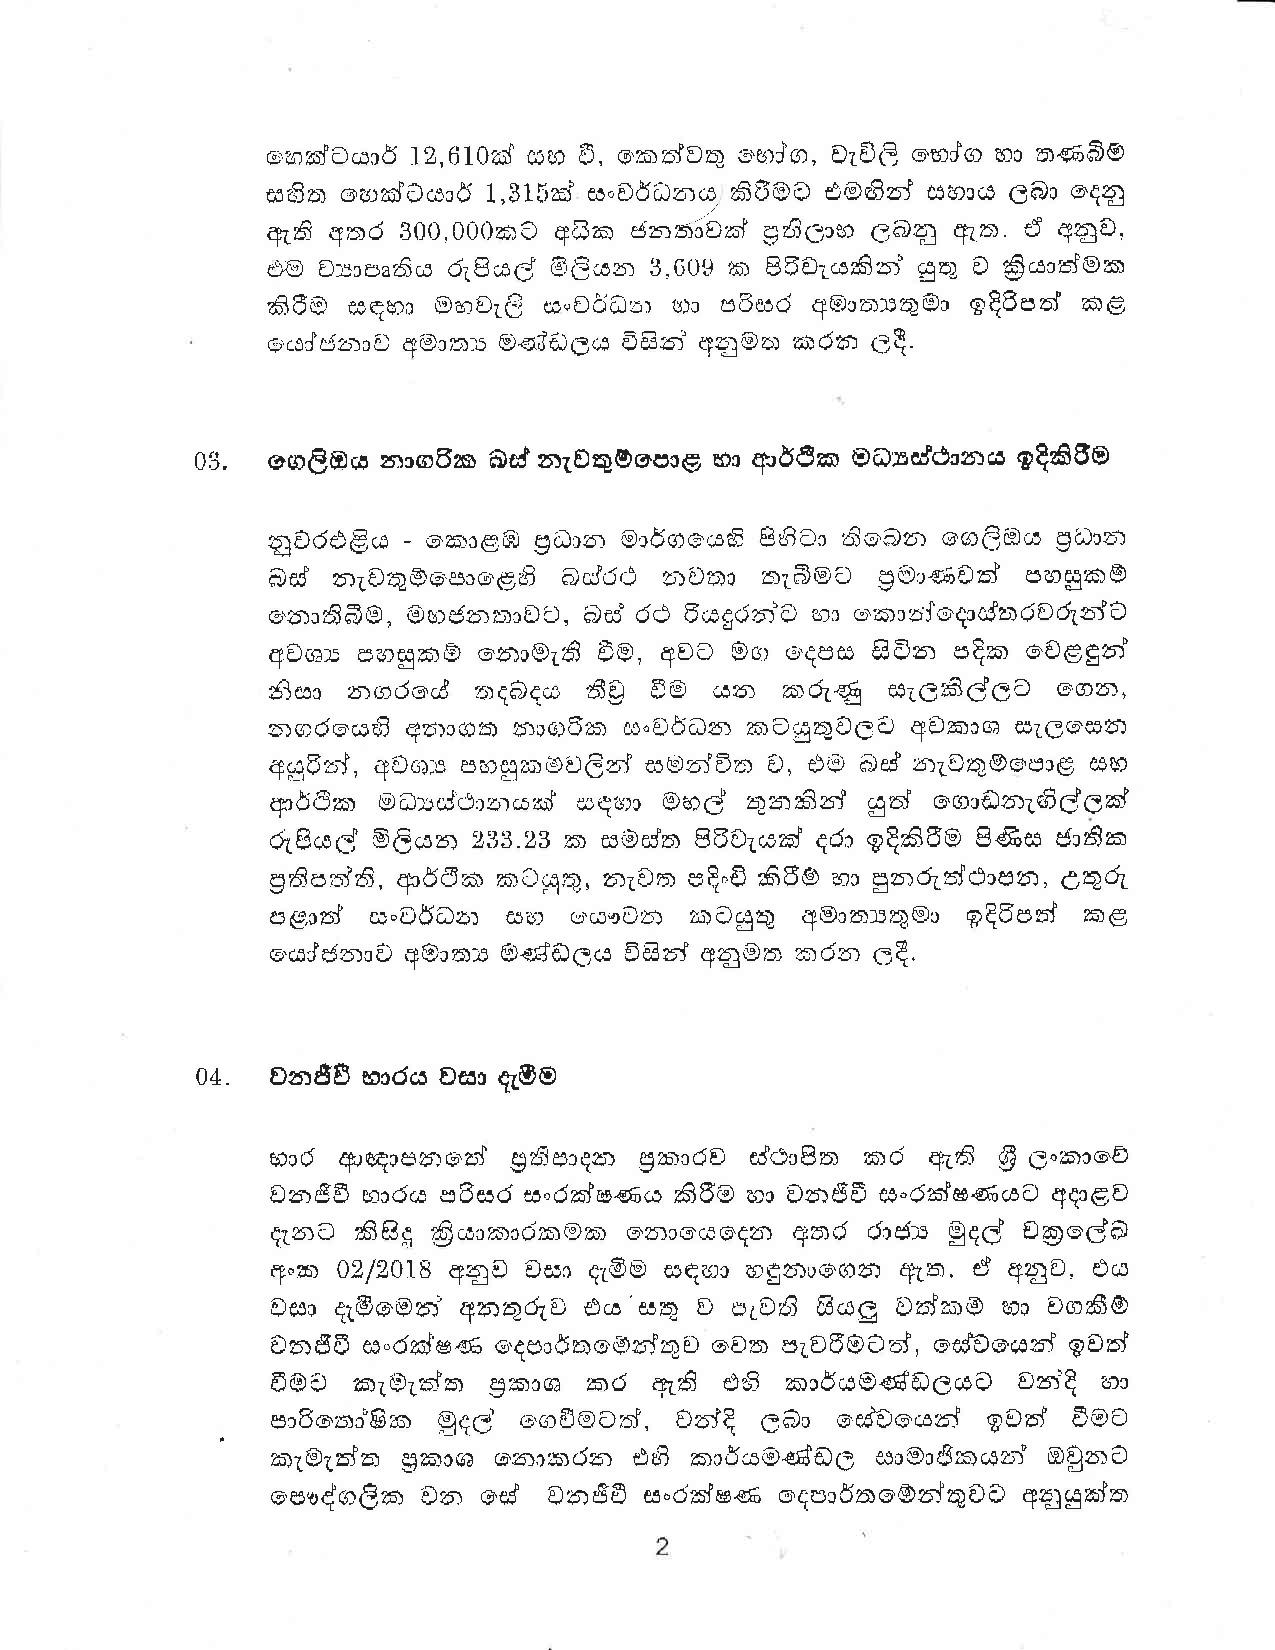 Cabinet Decision on 15.10.2019 page 002